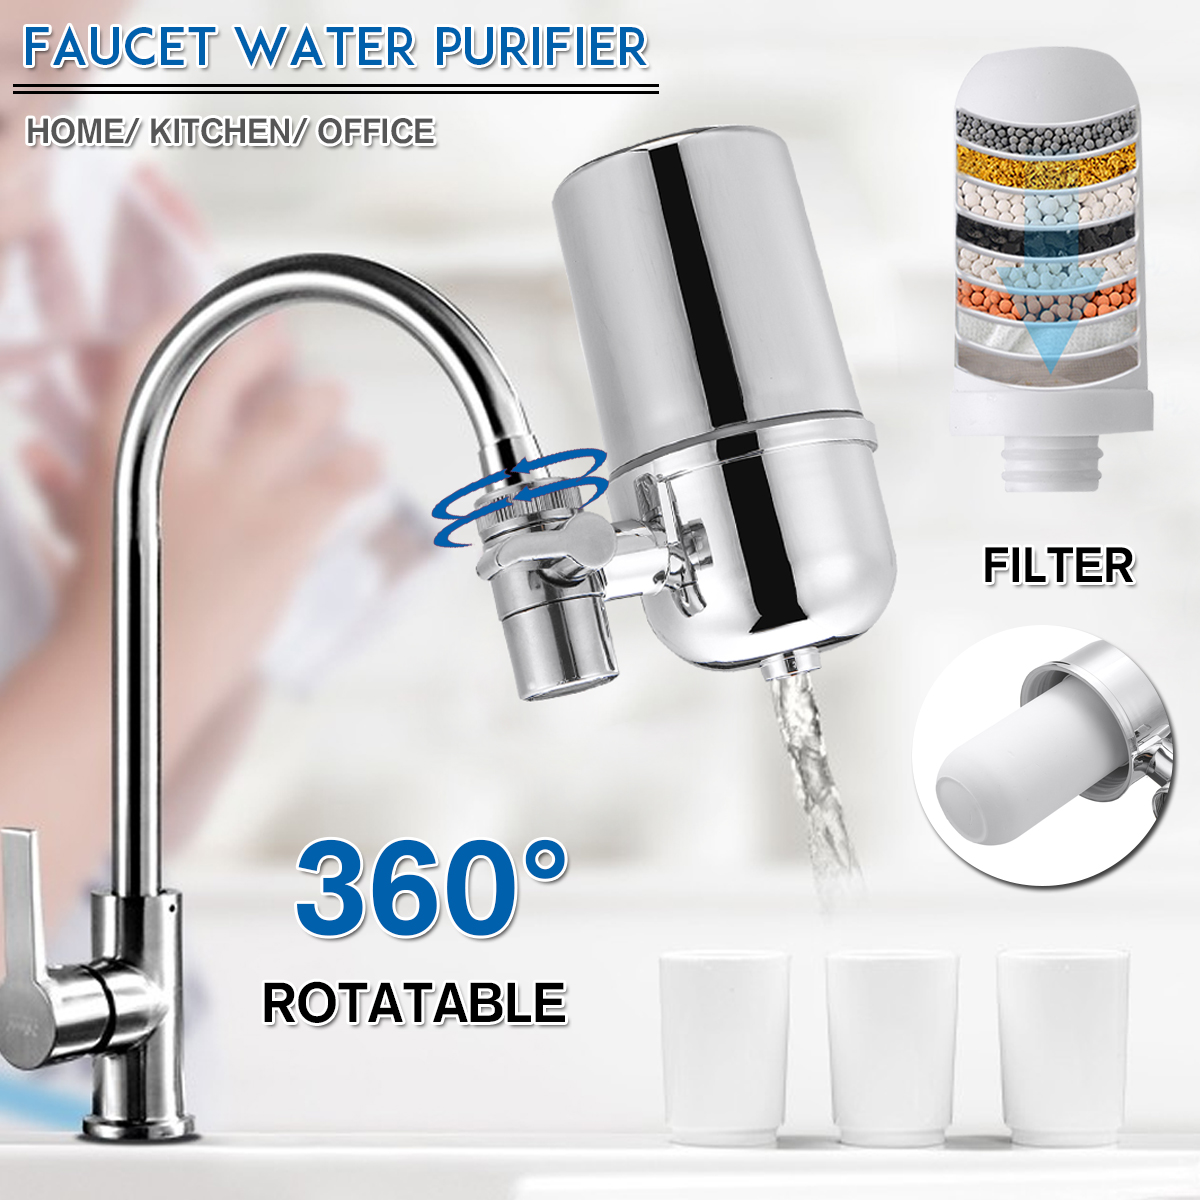 360 15 stage tap faucet water filter purifier system kitchen mount cleaner home